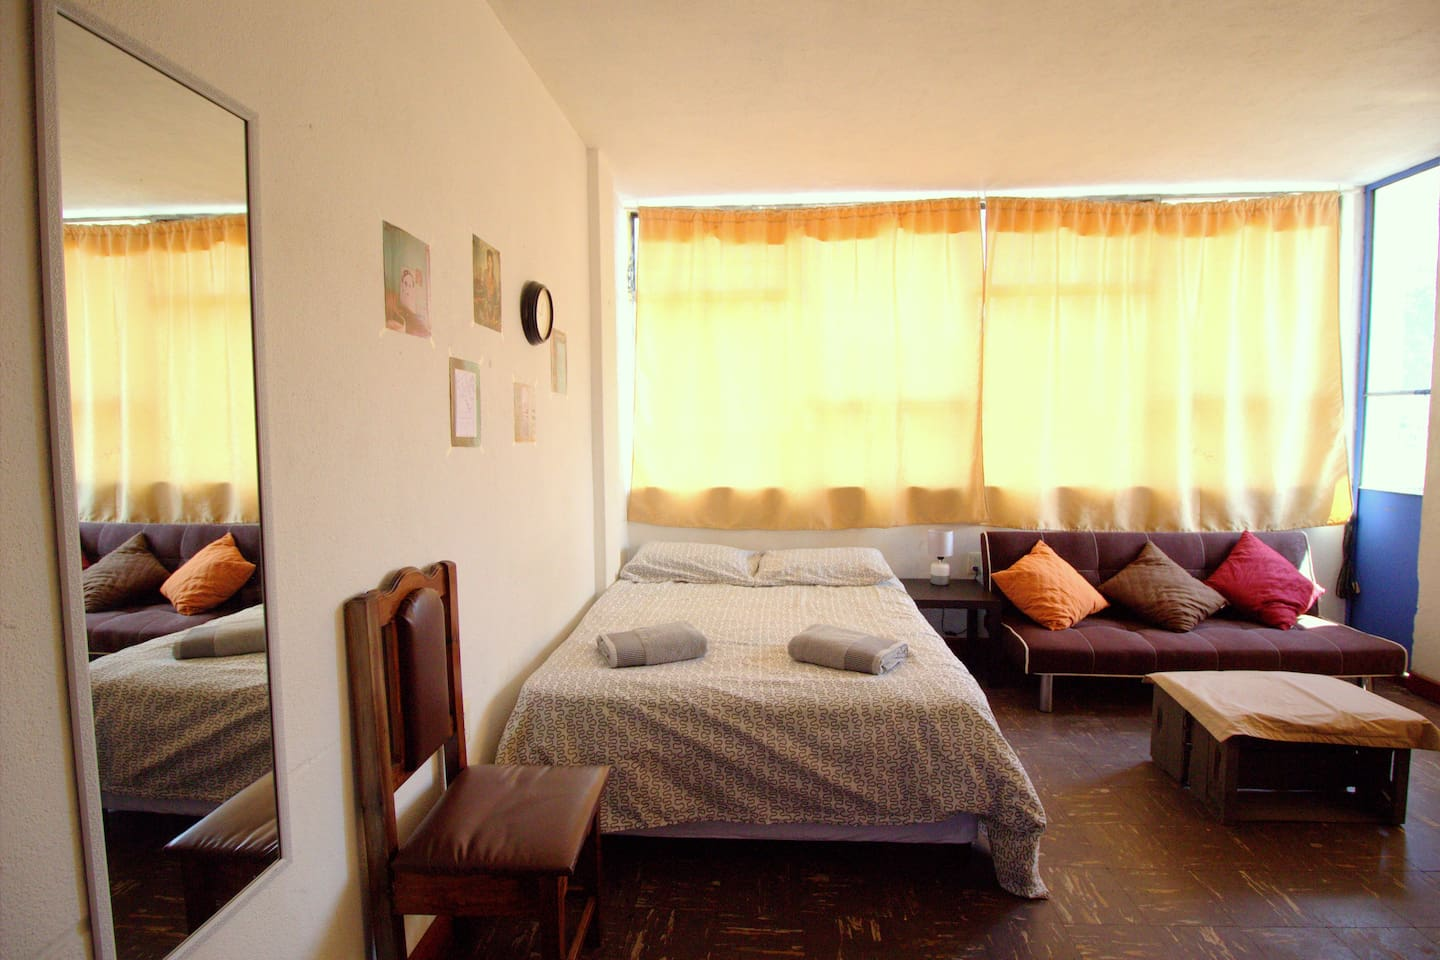 Your room with one double bed, a sofa, chairs, a table and a TV.